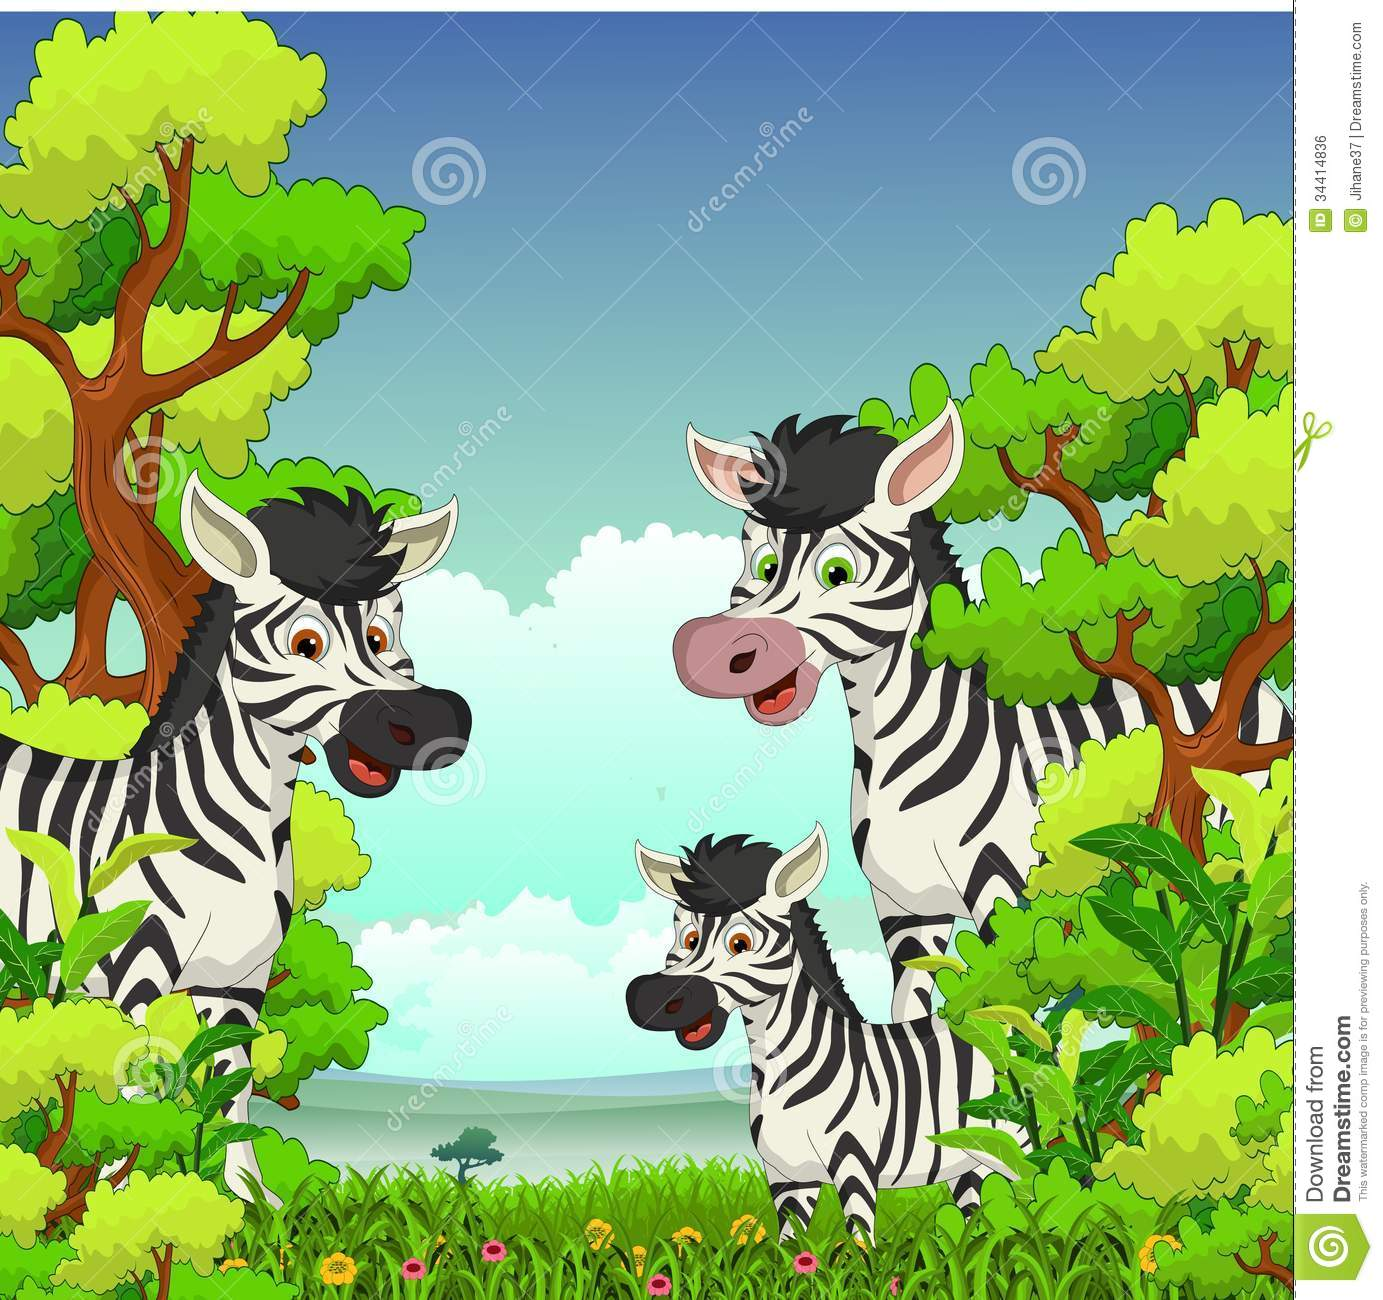 Family Of Zebra Cartoon With Forest Background Royalty Free Stock.